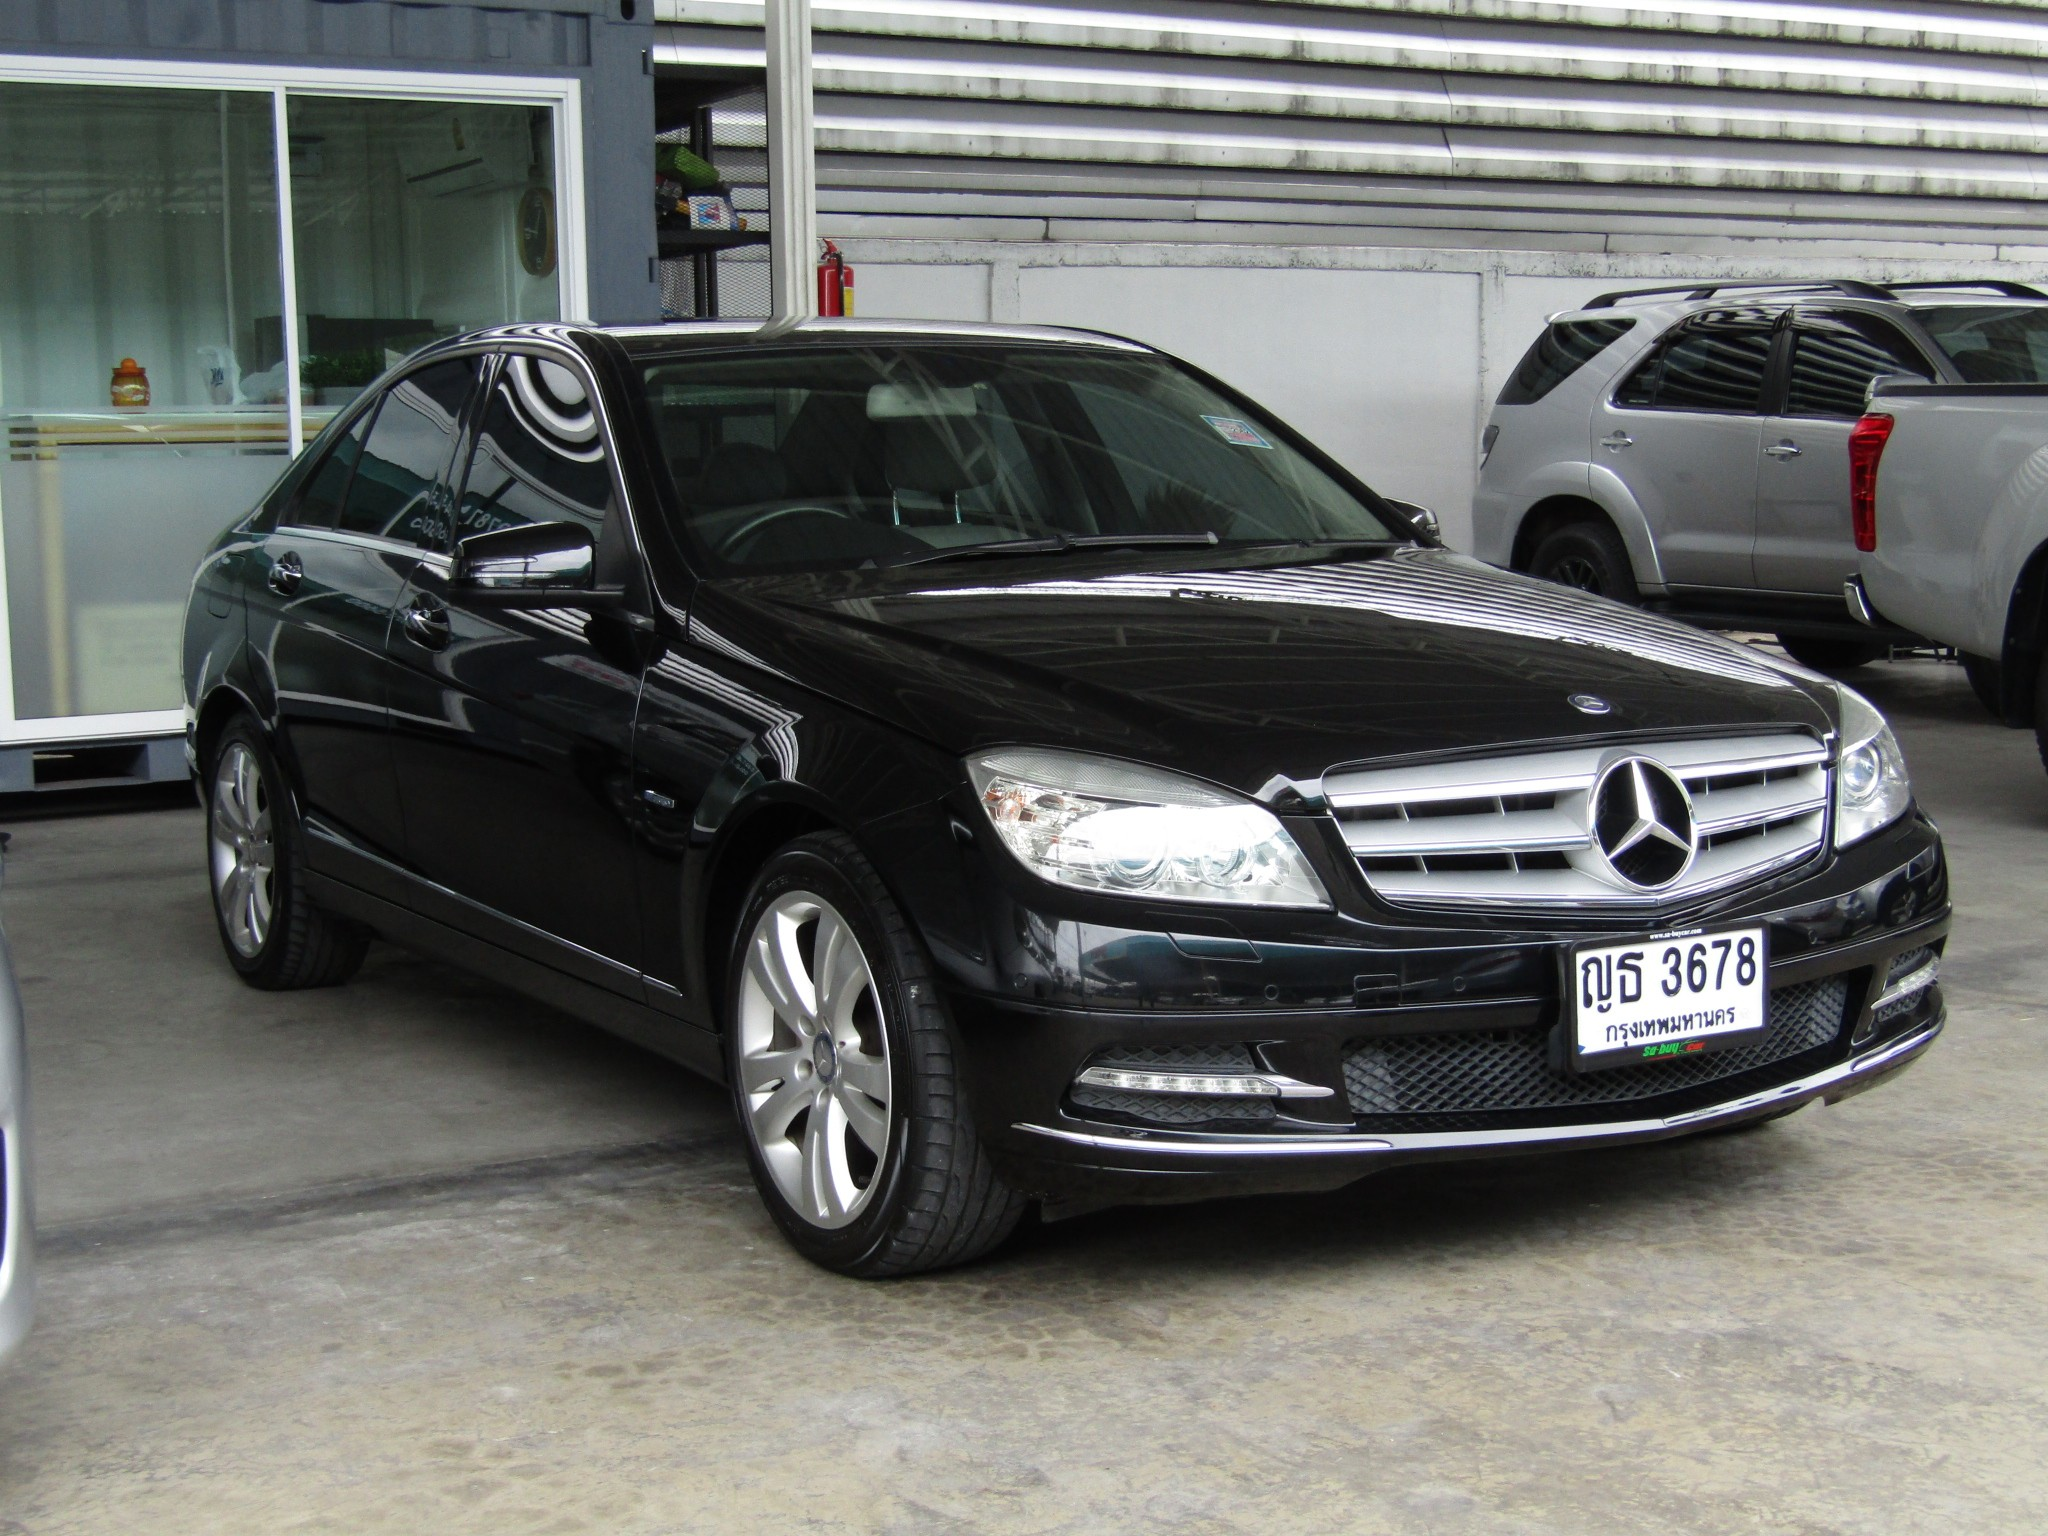 Mercedes-Benz (65,xxx) C250 CGI BlueEFFICIENCY  Avantgarde Sedan AT